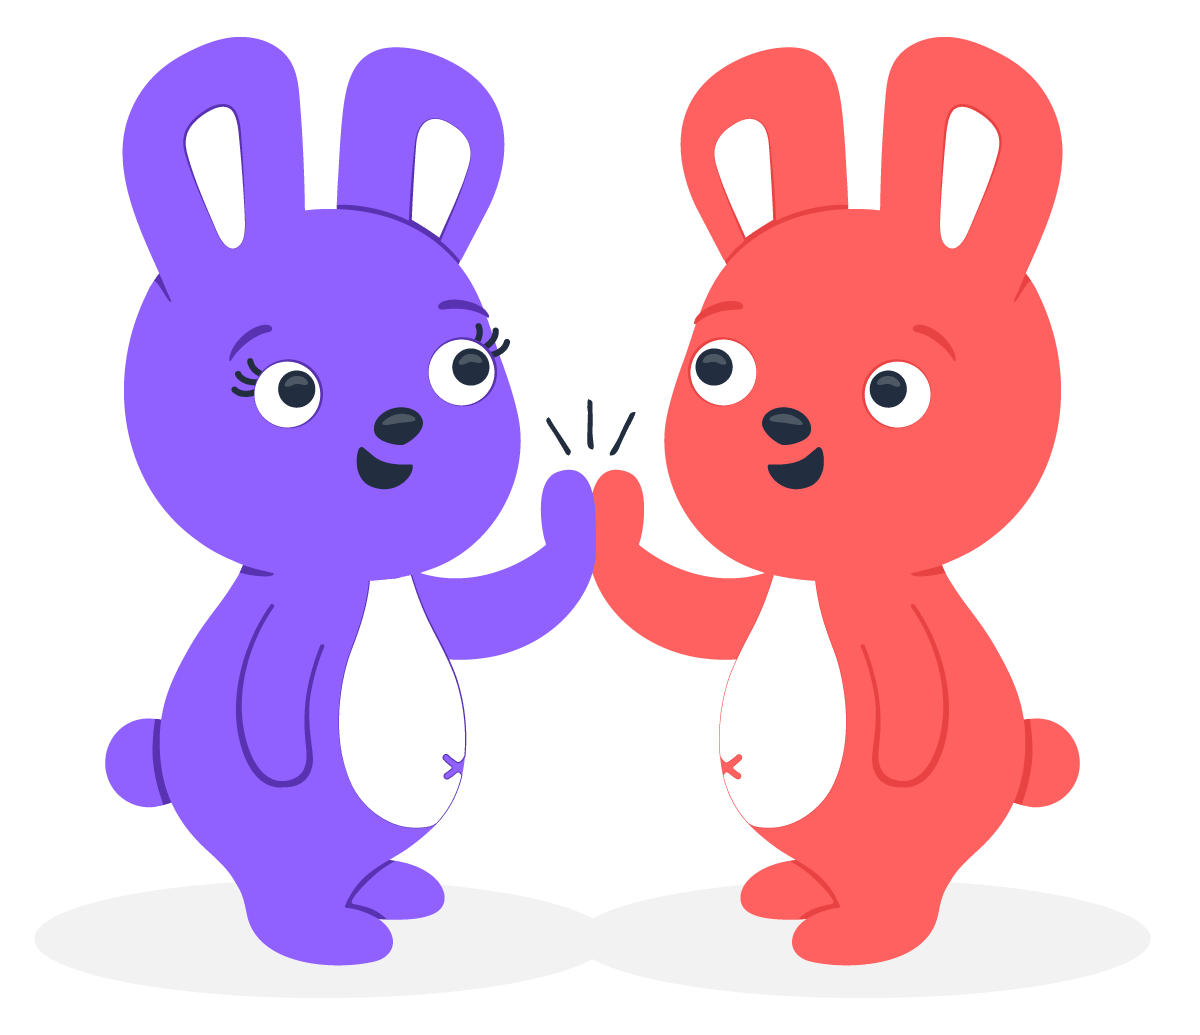 Two Hoppy bunnies high-fiving each other to show employee appreciation one-on-one